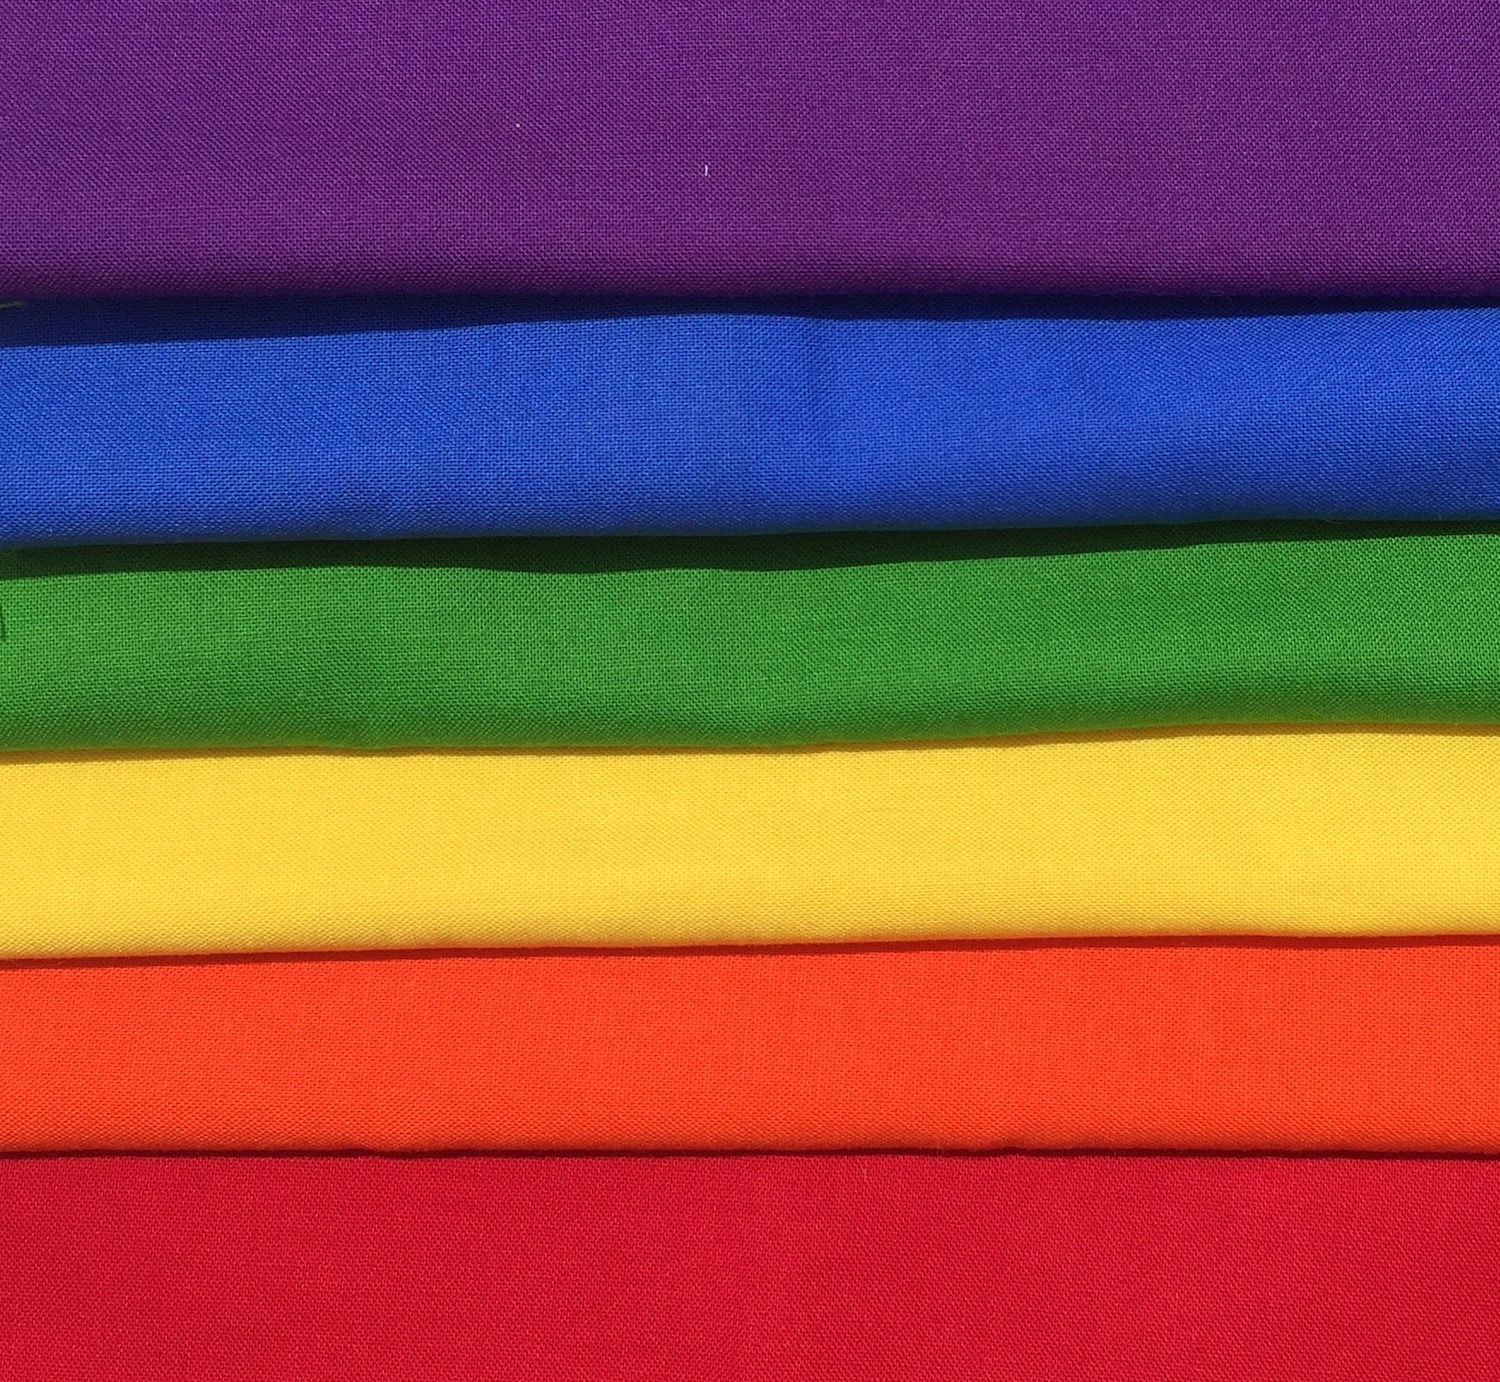 Our palette is a crayon box of primary colors.